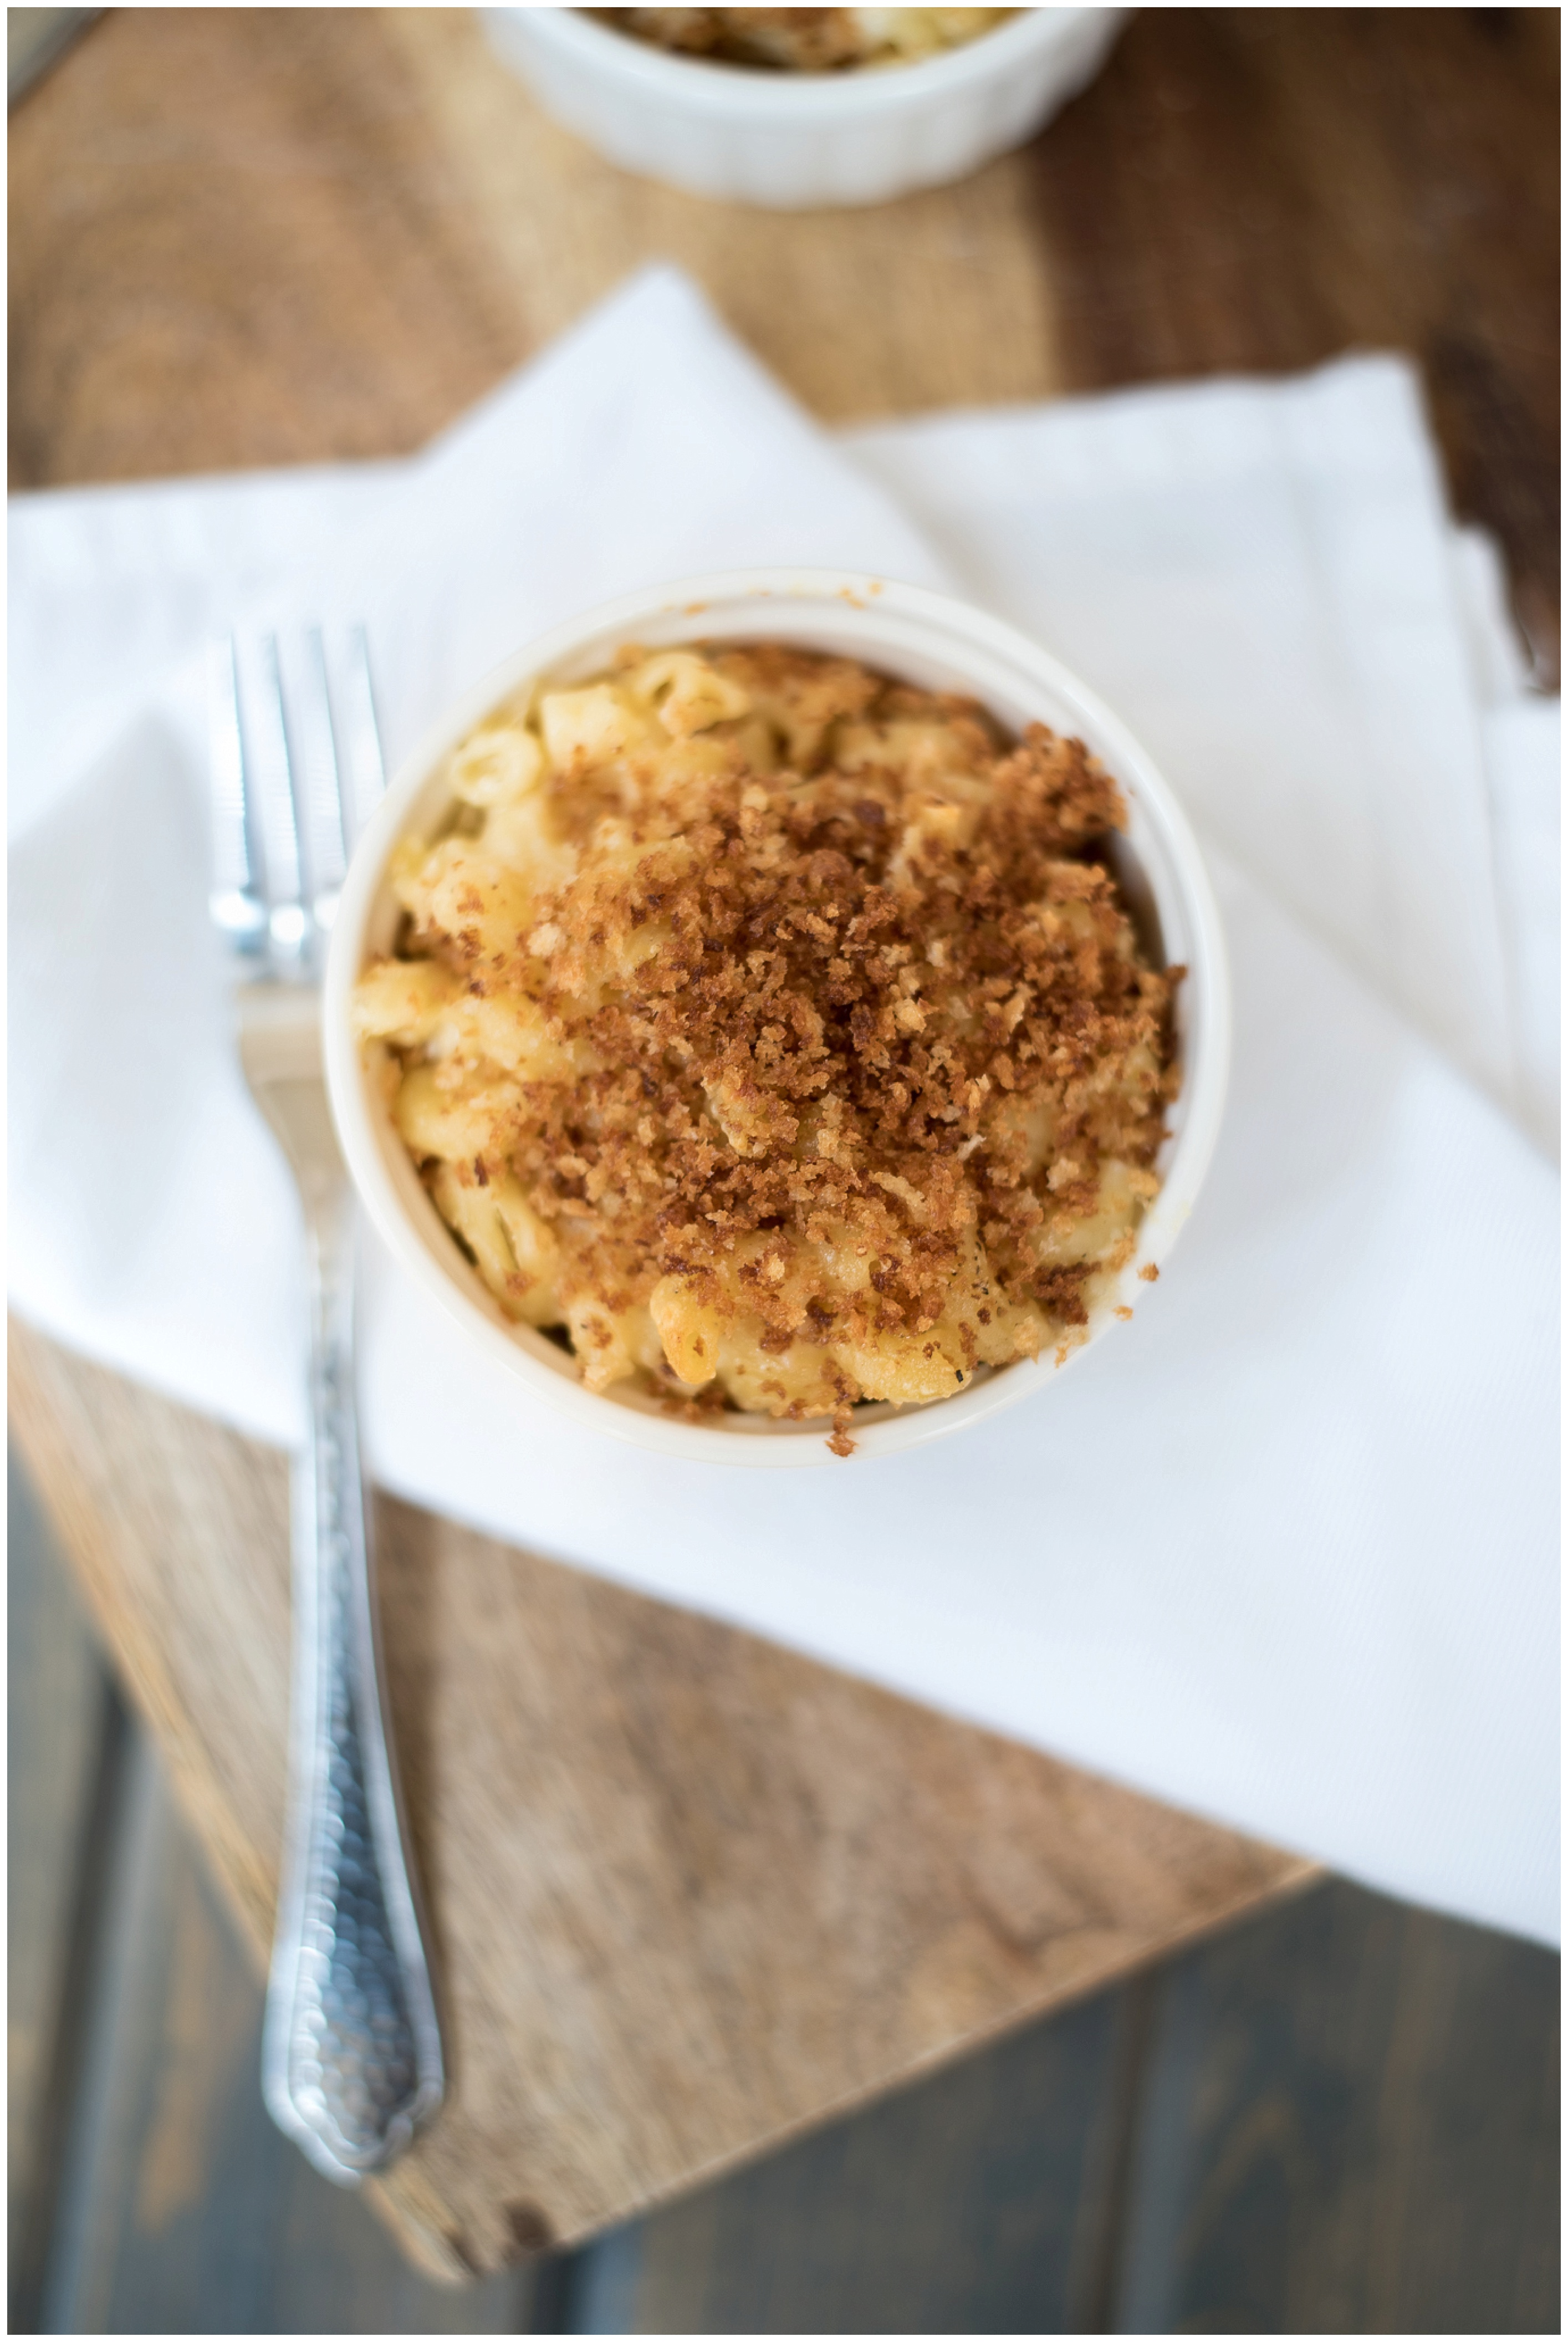 The occasional Sunday calls for delicious, cheesy, comfort food. That's where this White Cheddar Macaroni and Cheese recipe comes in. www.thenewmrsallen.com